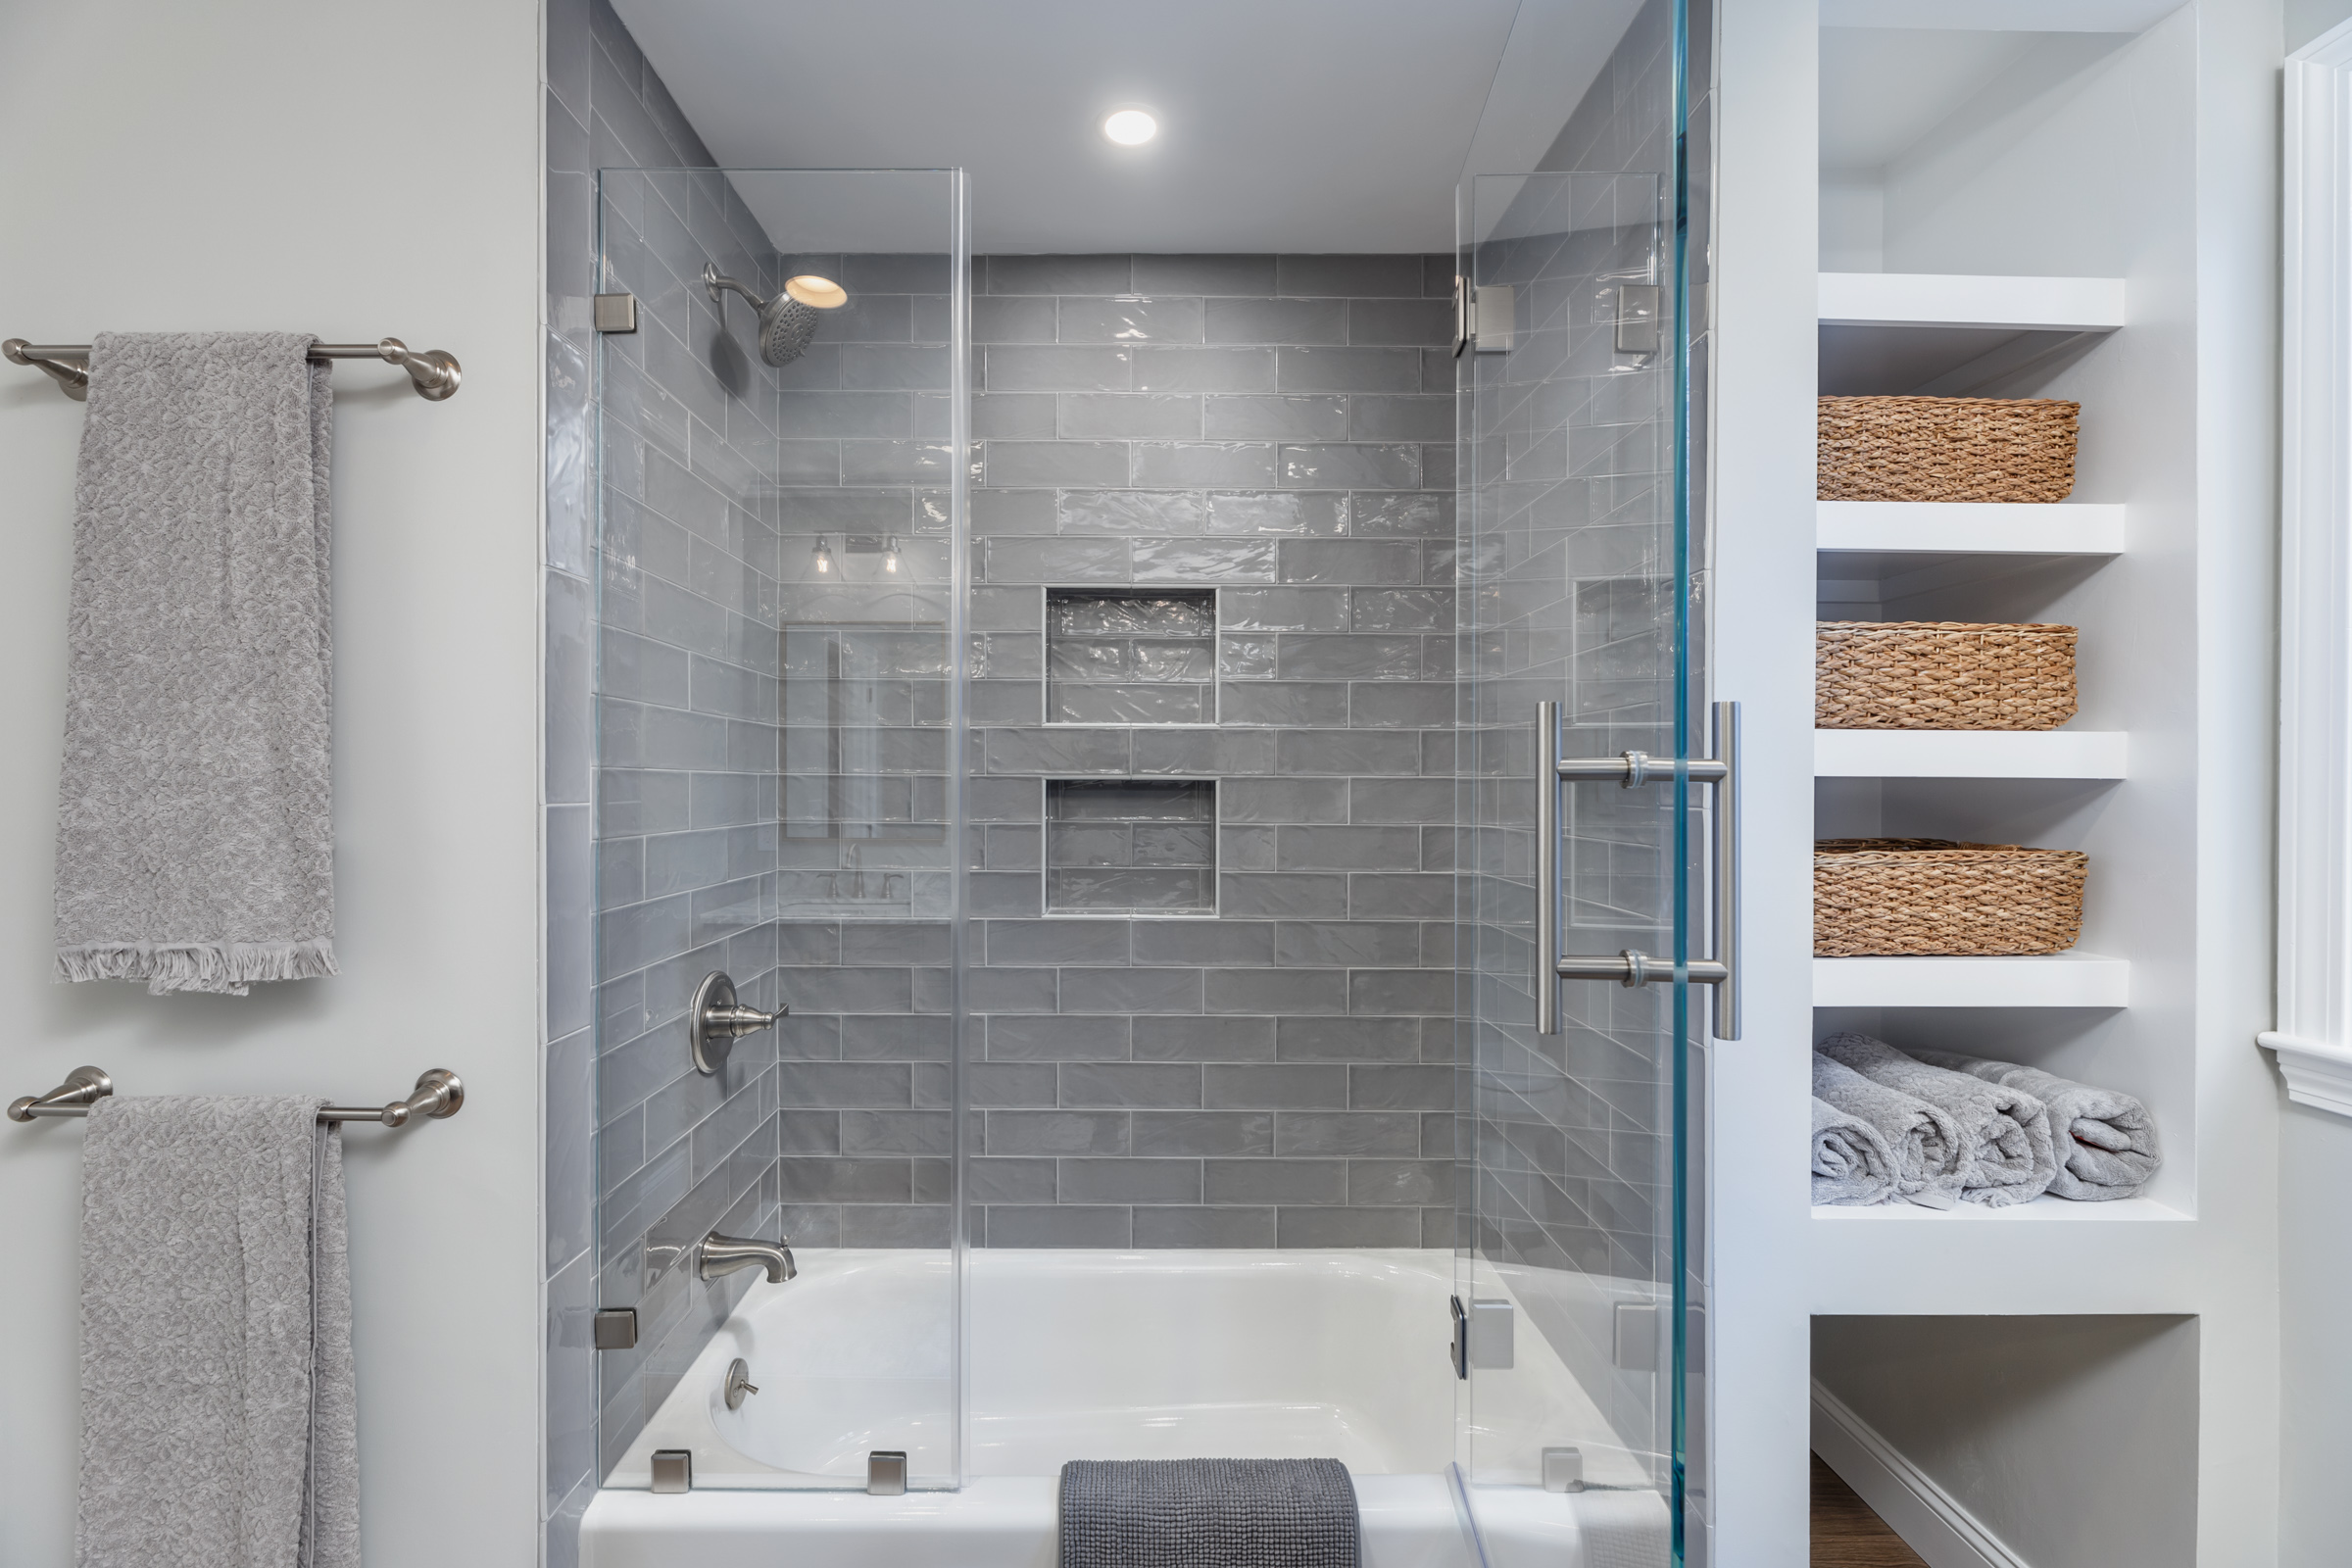 Shower built-in and towel rods.jpg